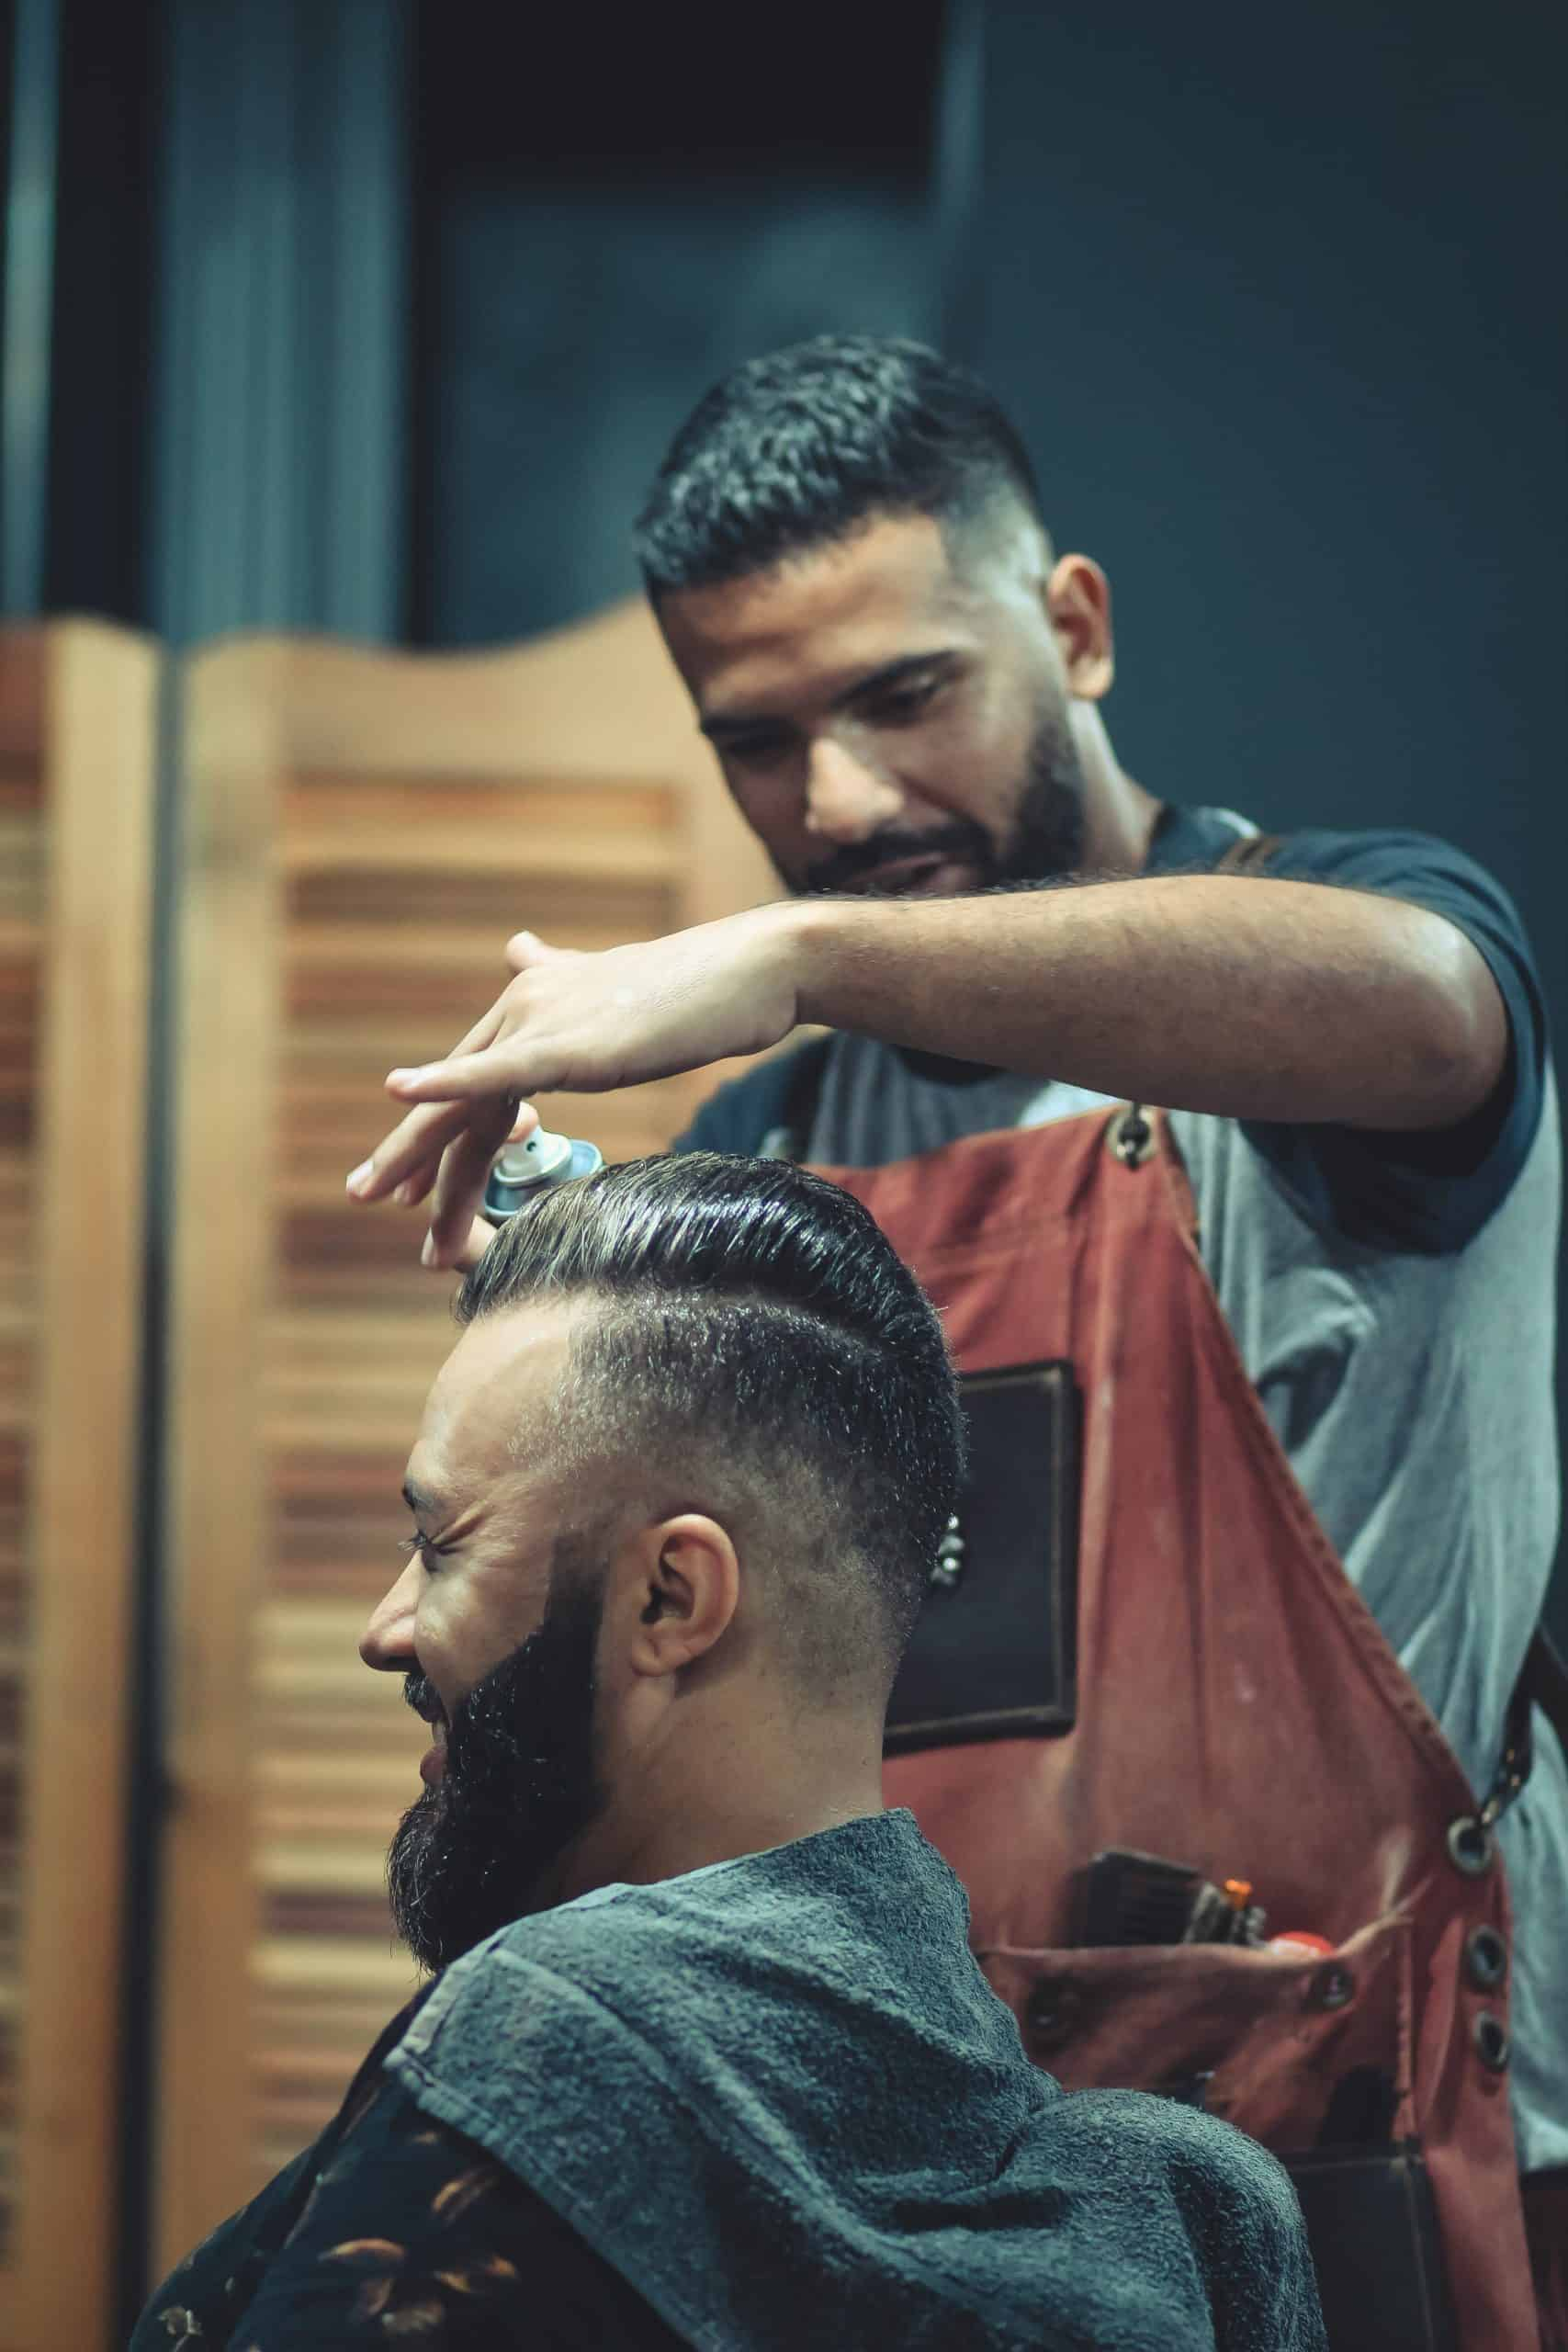 Top 5 New Hairstyles For Men With Wavy Hair